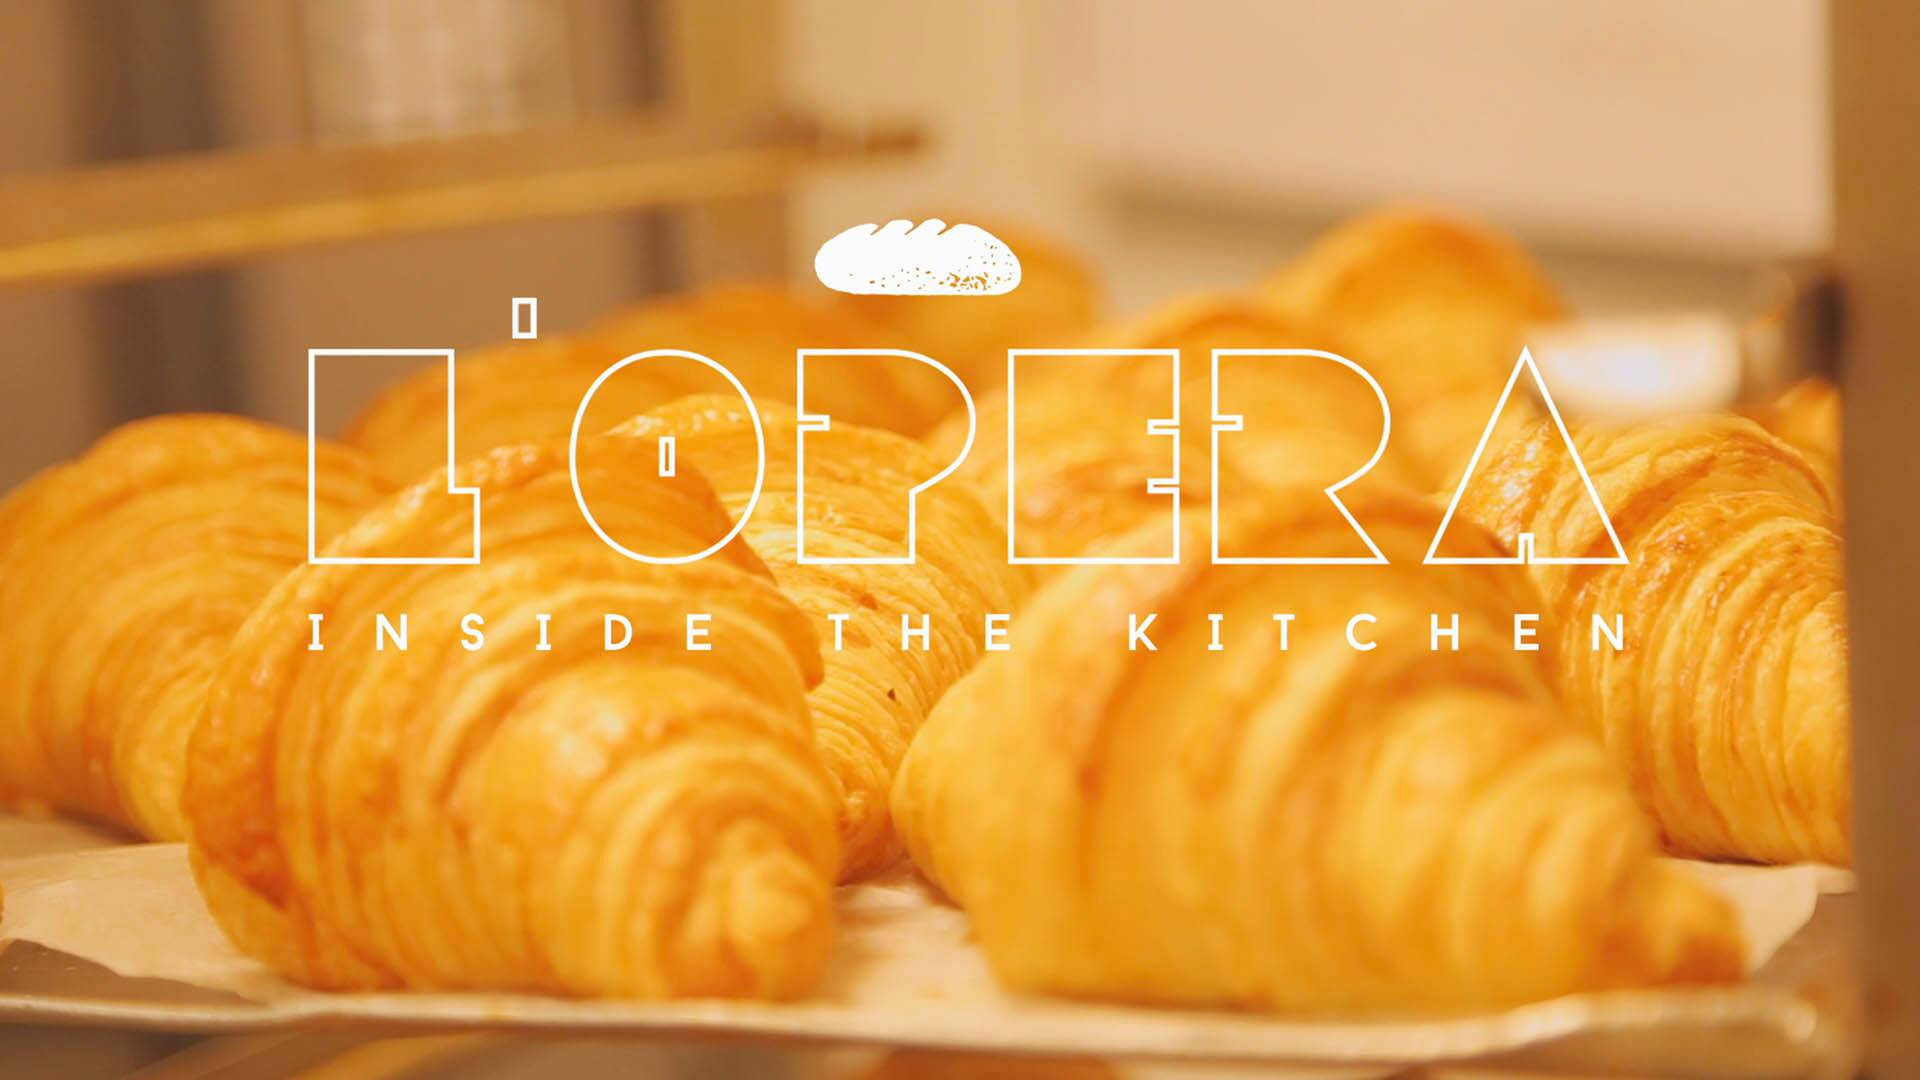 L'opera: Inside the Kitchen